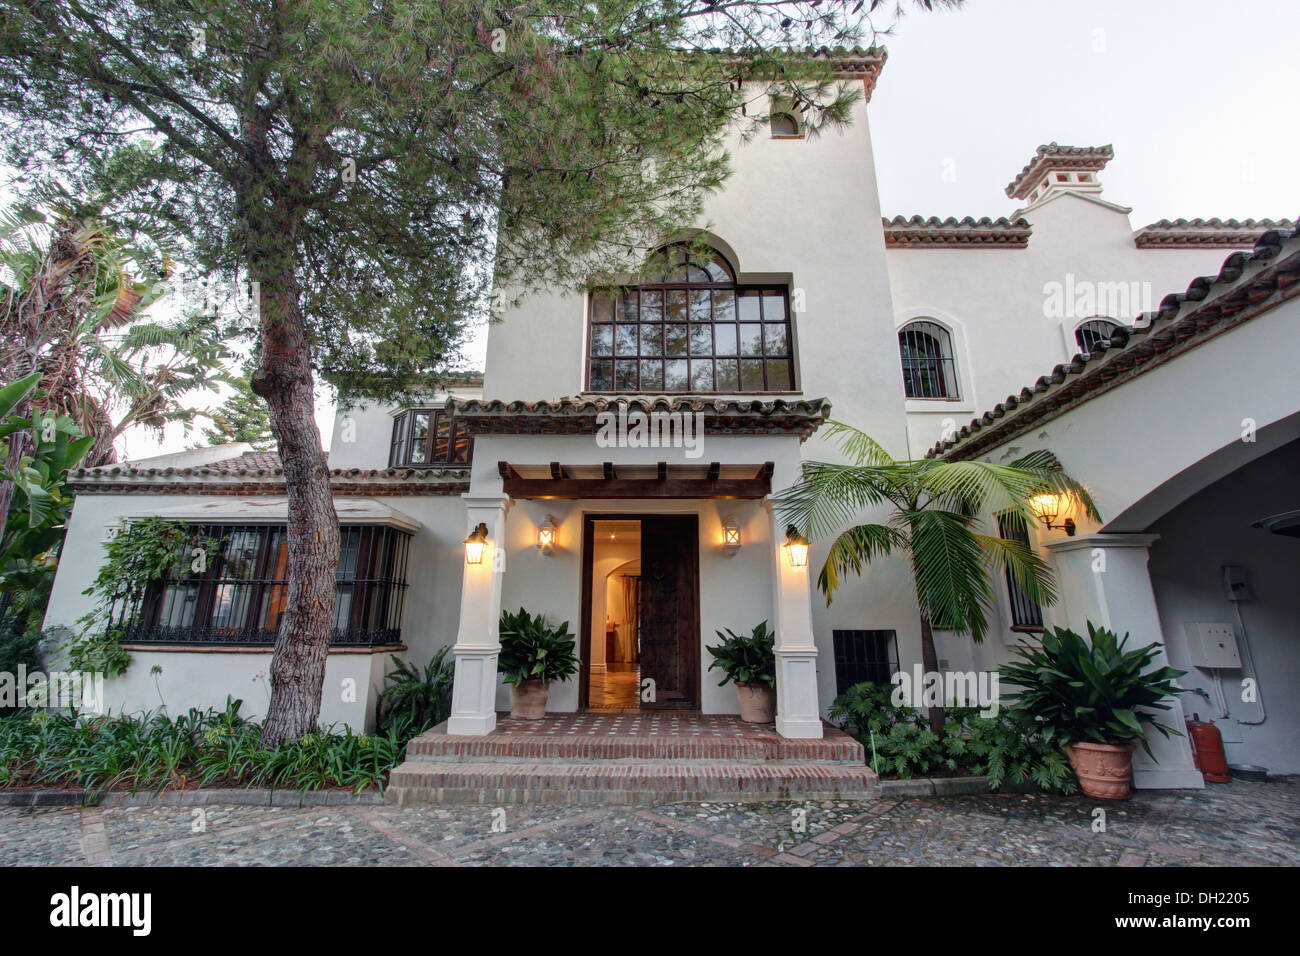 Tall Tree Beside Large Traditional Spanish Villa With Wall Lights On Porch Below Arched Window